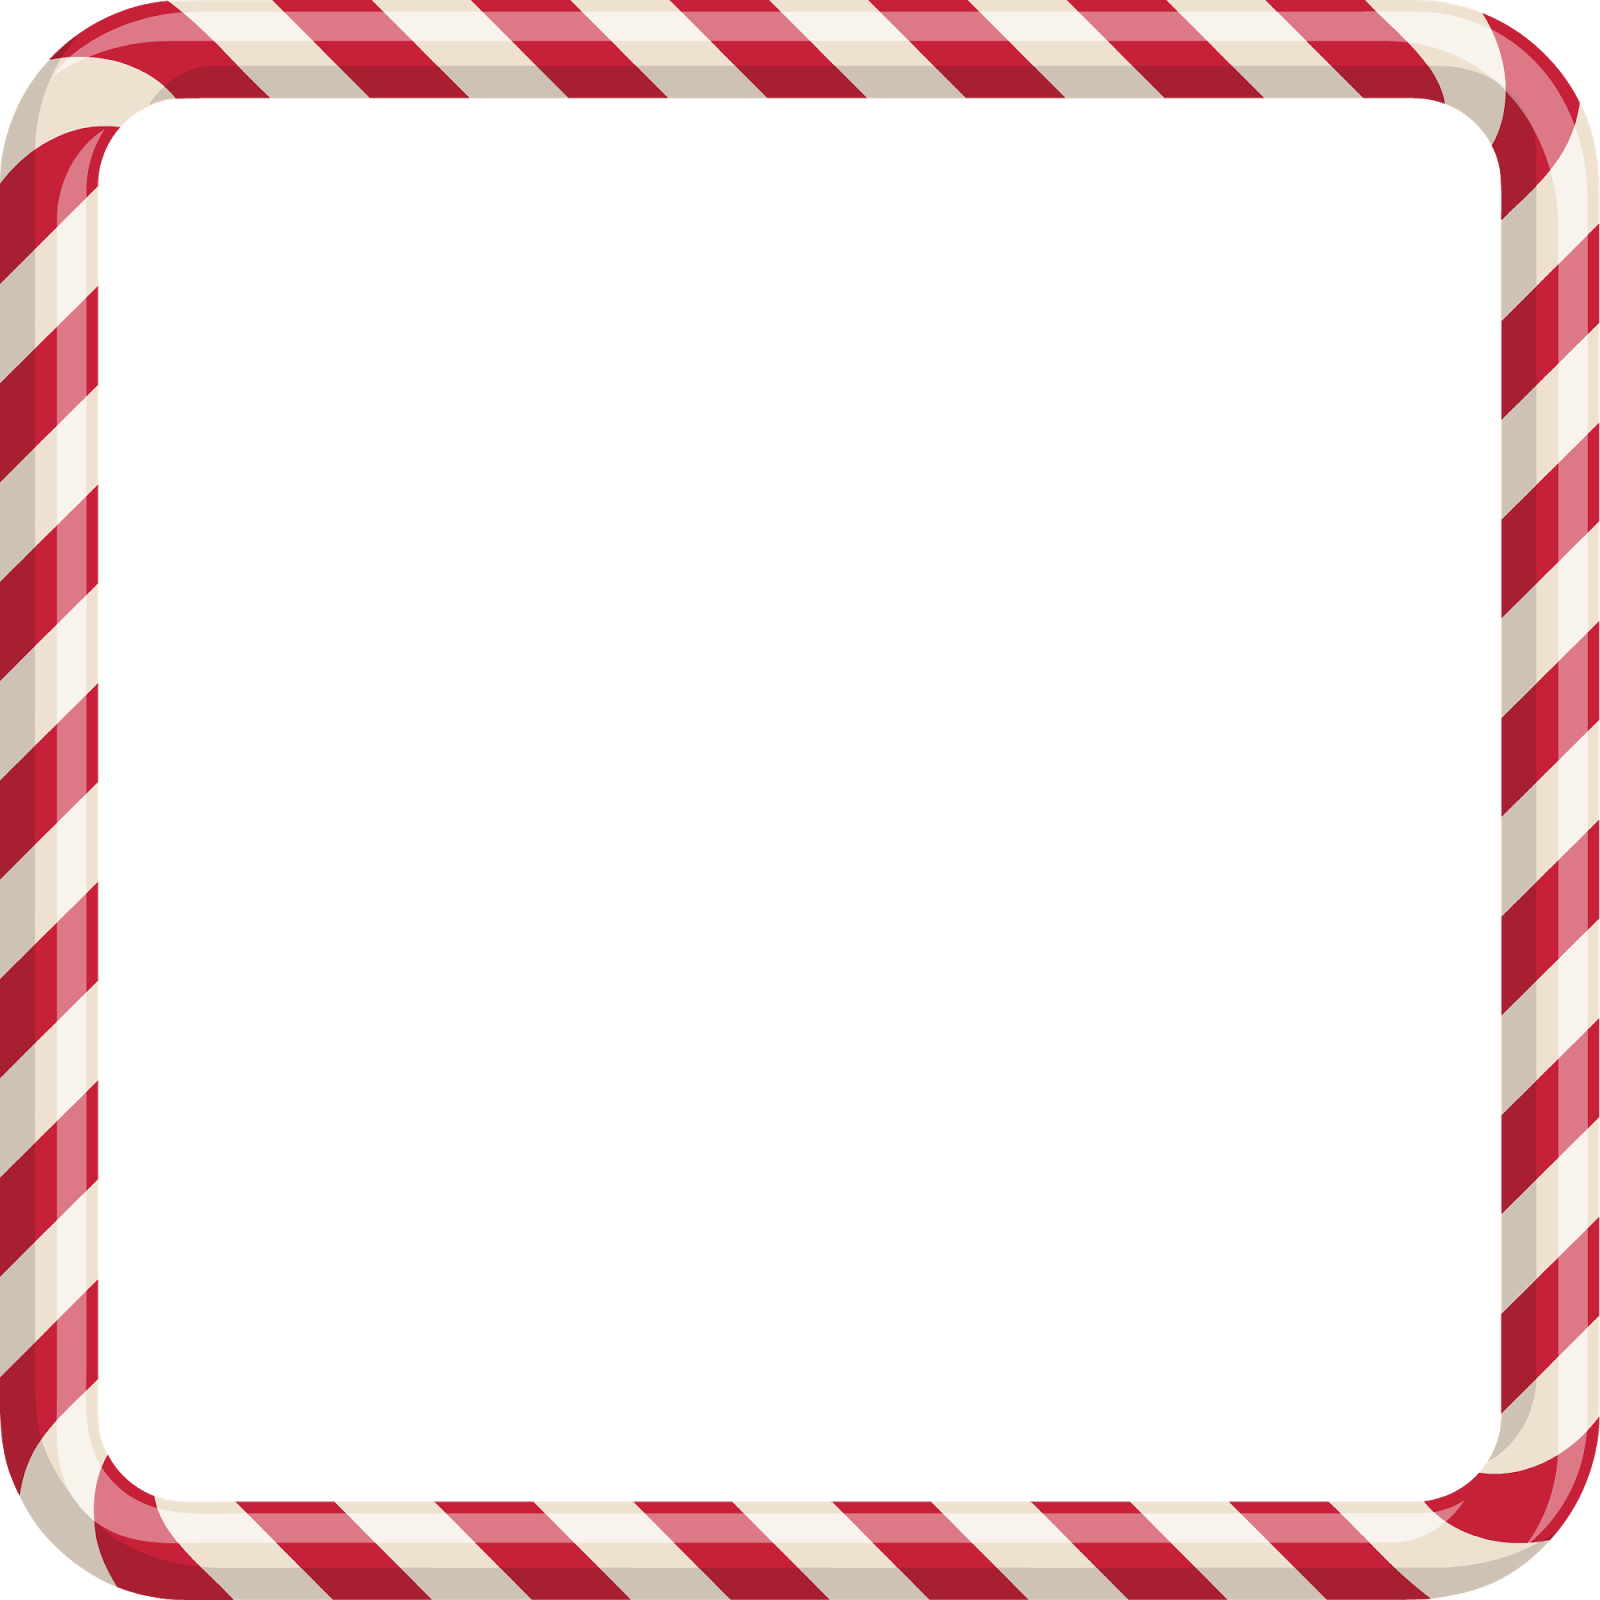 Candy Cane Png | New Calendar Template Site